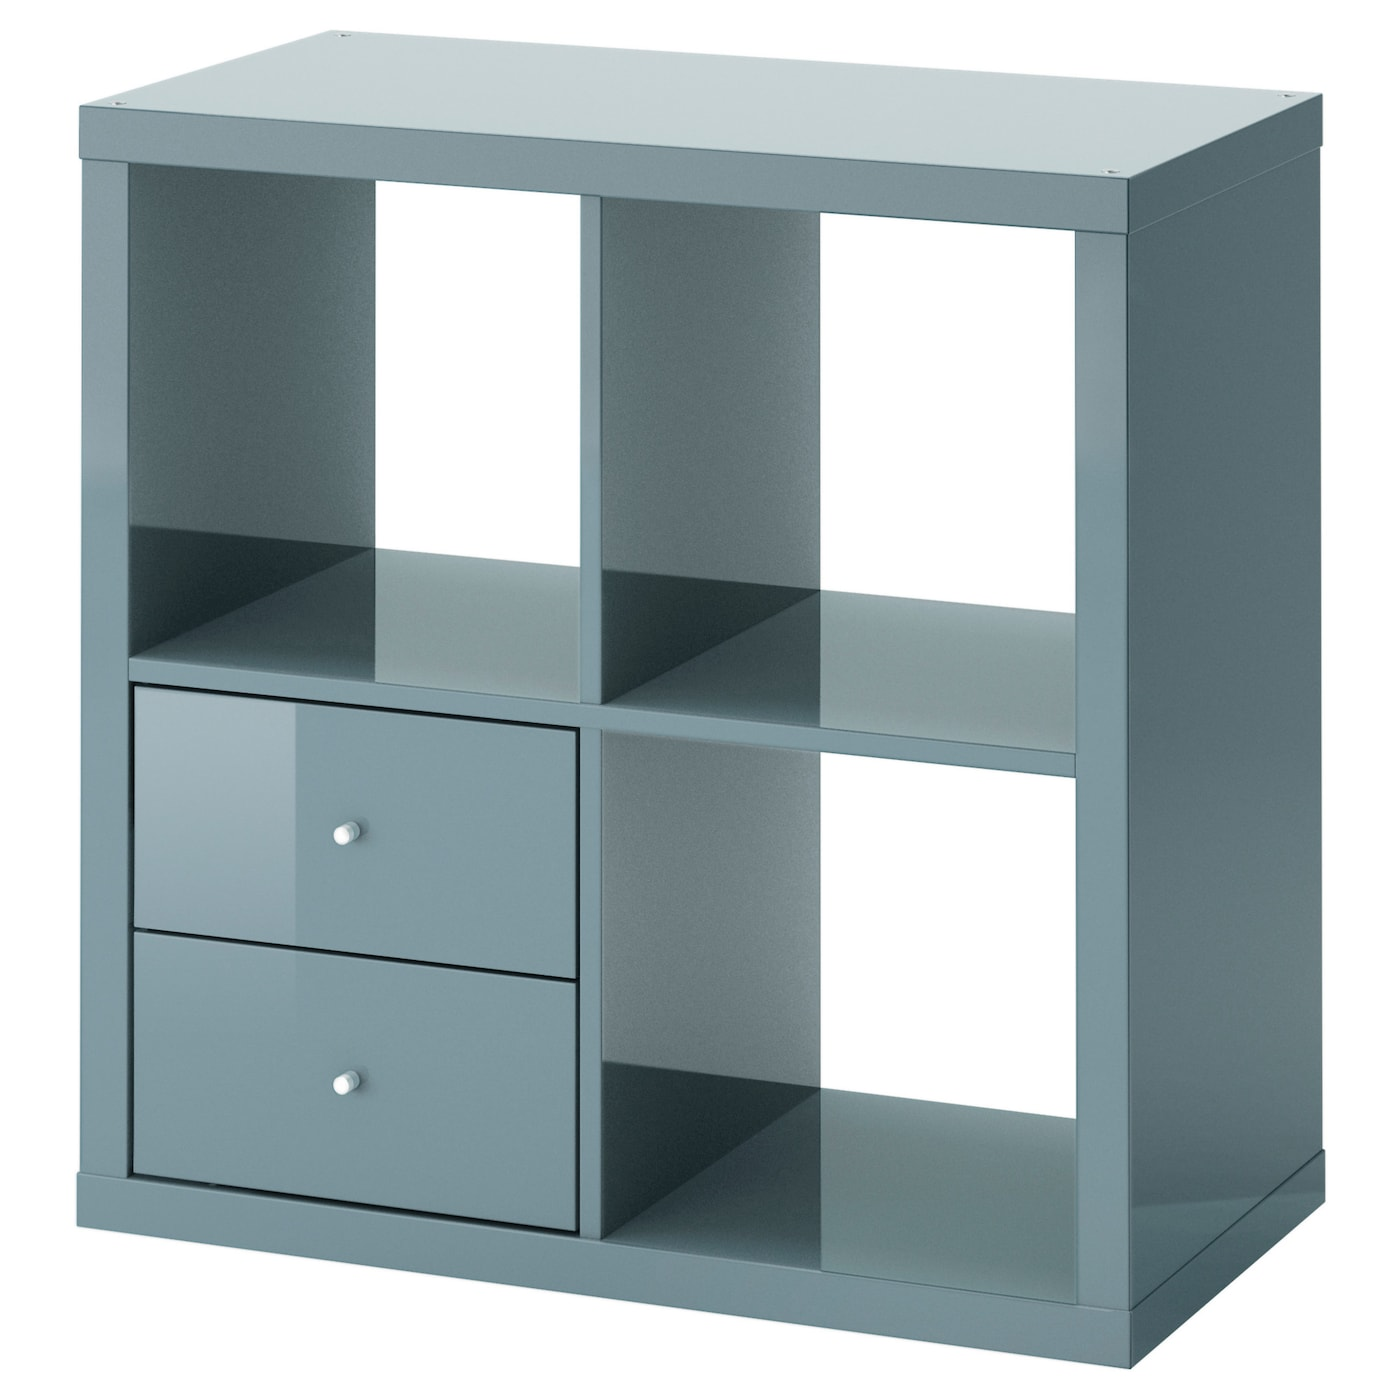 Kallax shelving unit with drawers high gloss grey for Meuble 4 cases ikea